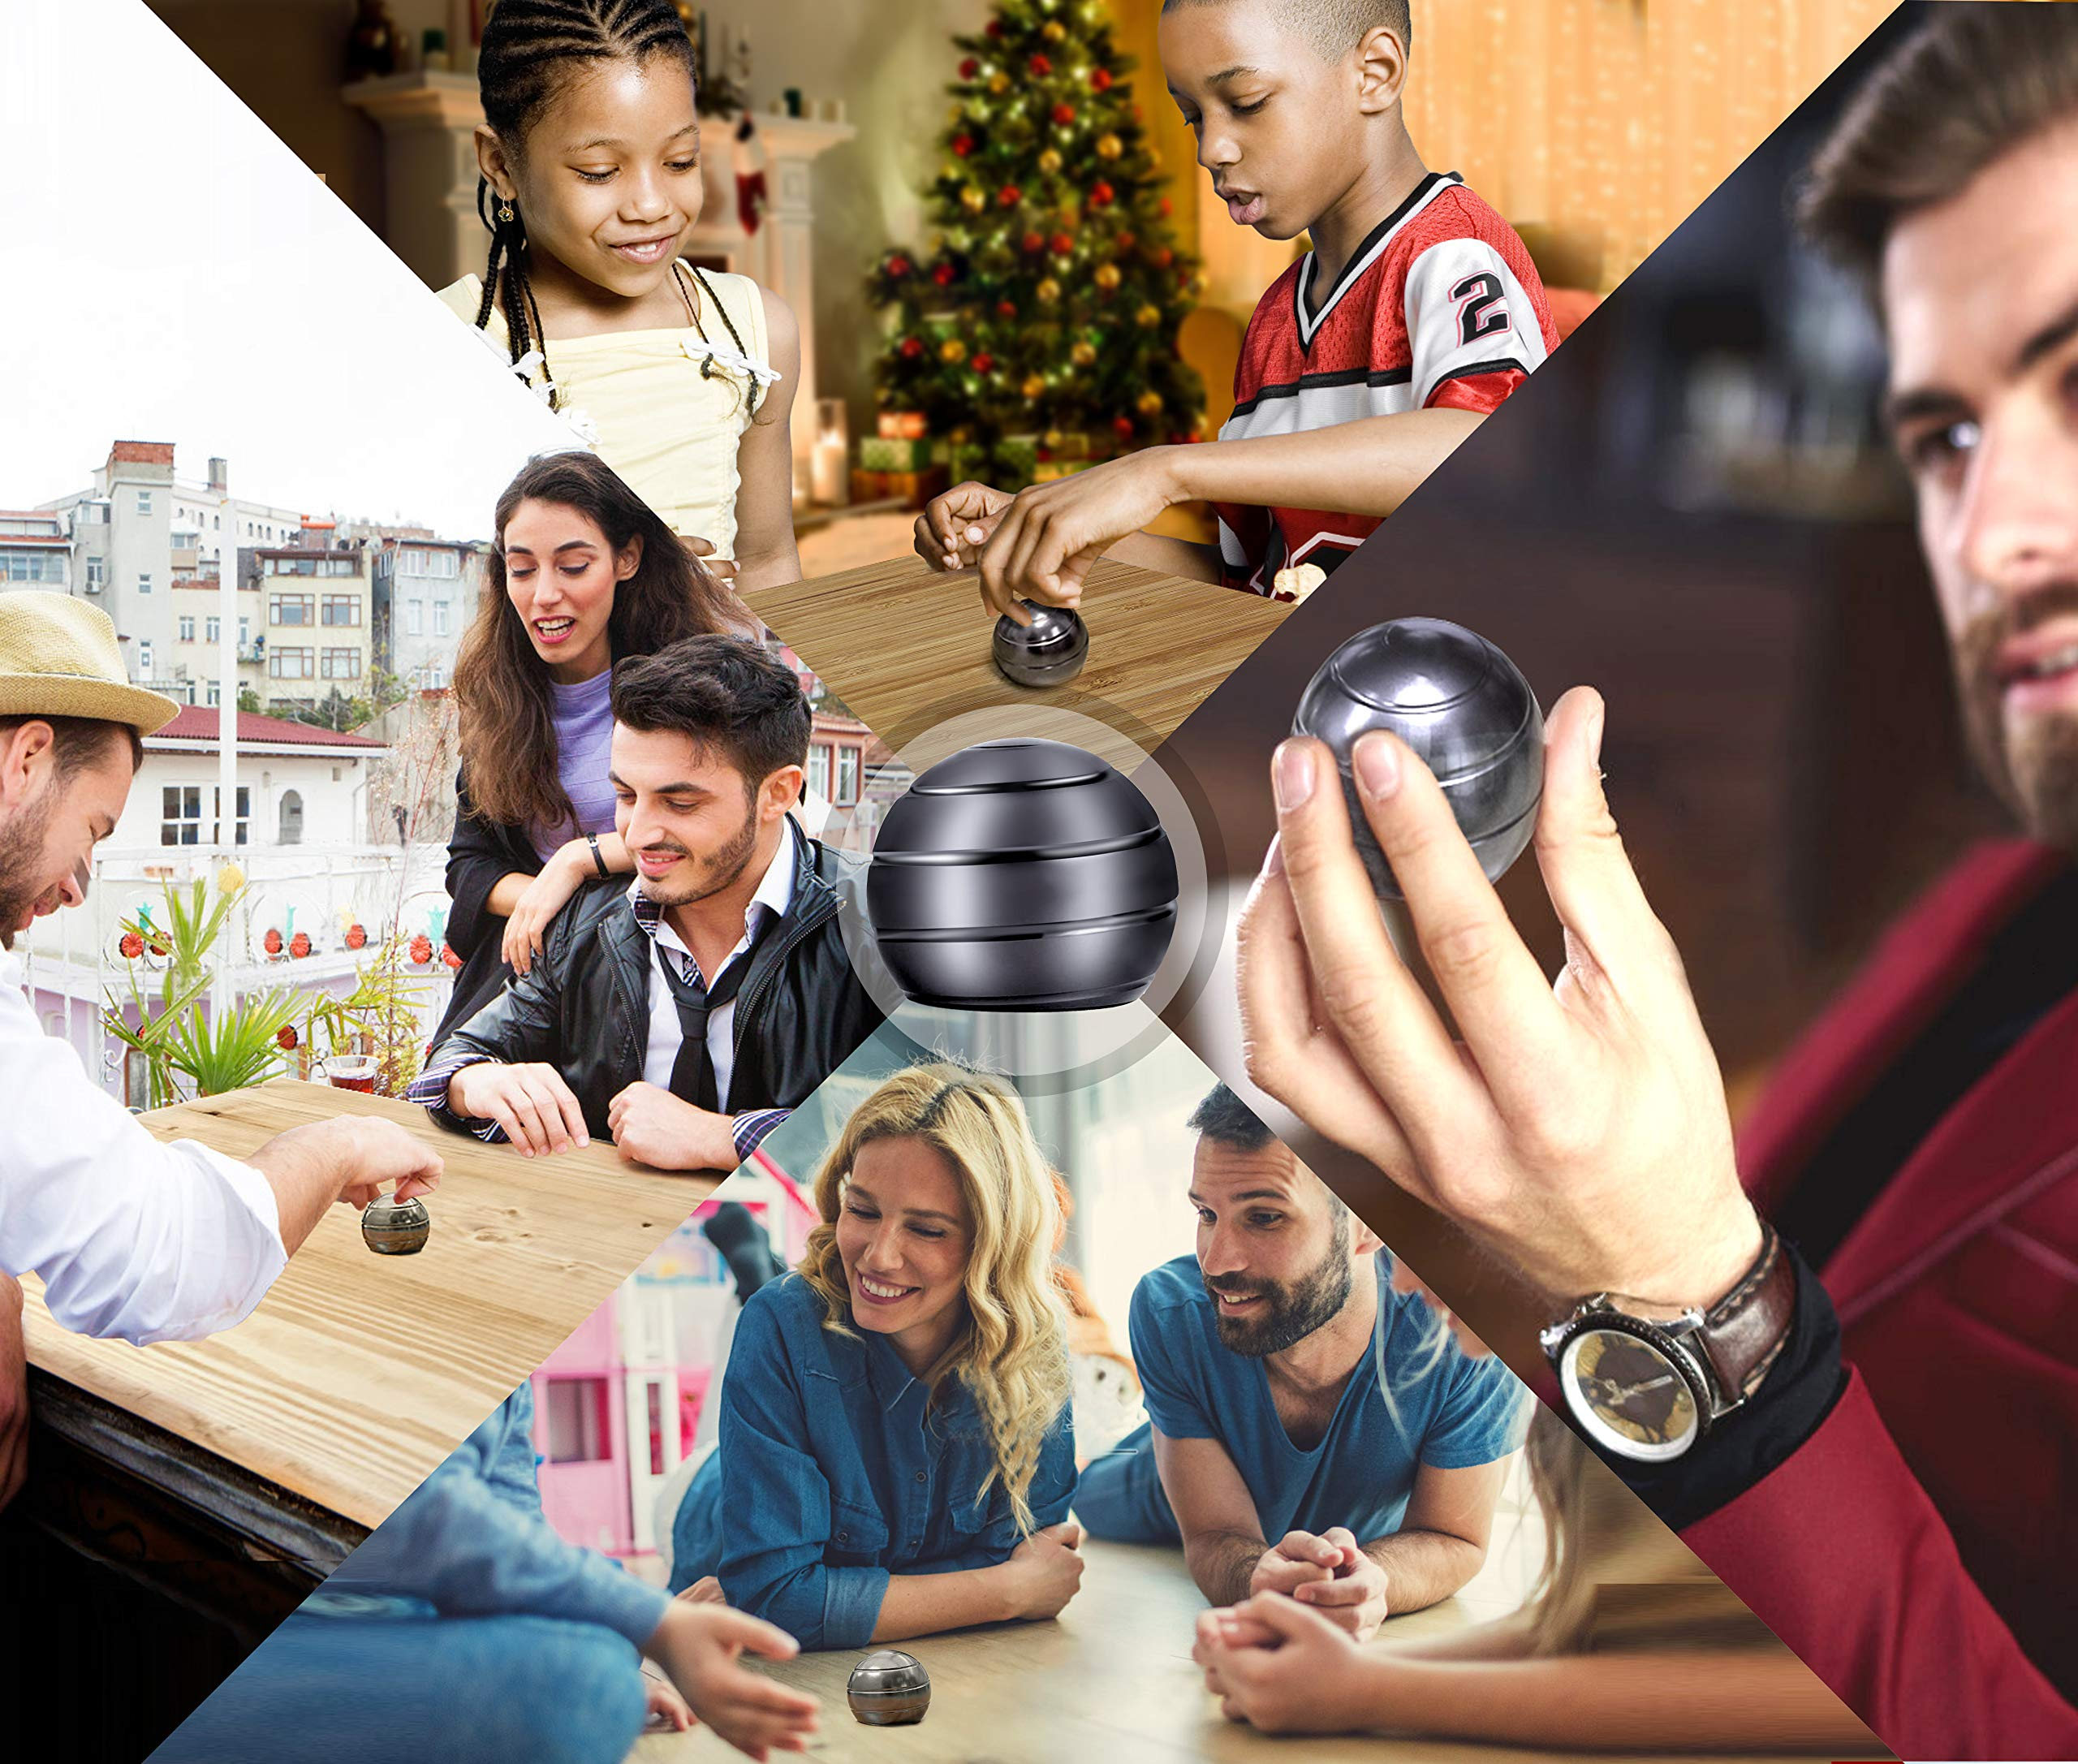 Mountain Giant Kinetic Desk Toy with Full Body Visual Illusion Ball Decompression Ball Fidget Stress Anxiety Relieves Aluminium Decoration Ball for Kids and Adults by Mountain Giant (Image #5)